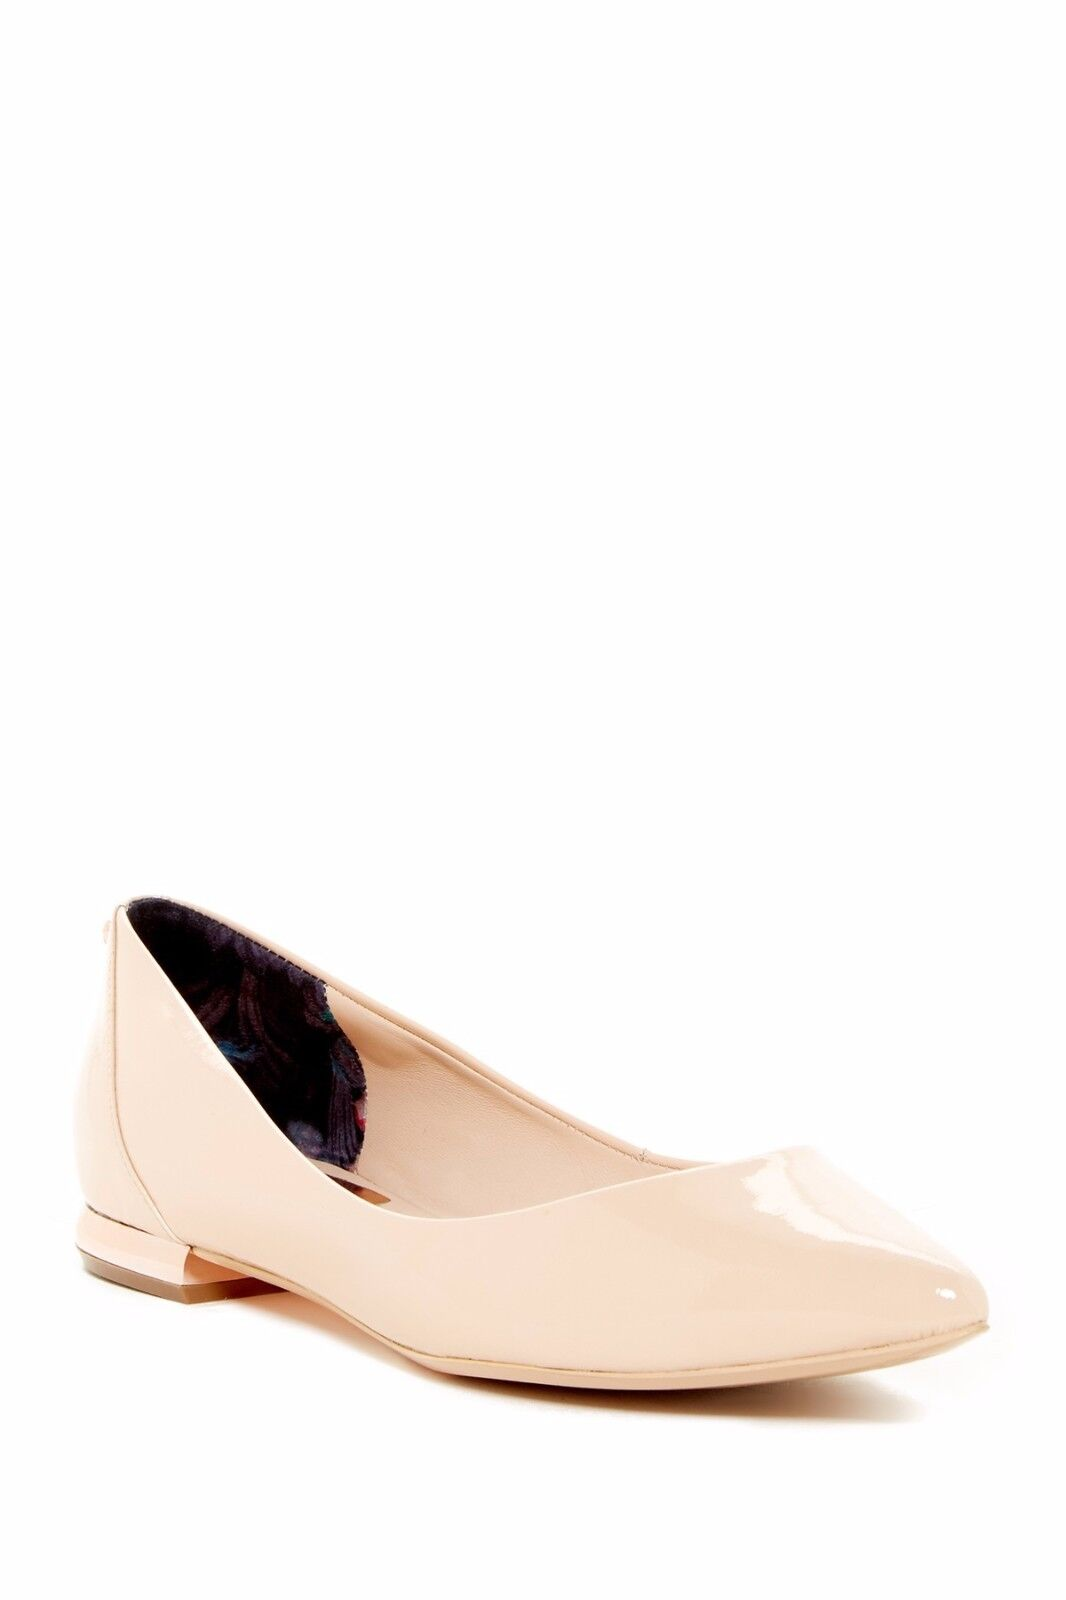 Ted Baker IZLAR Patent Bow Leather Flats Shoe Metal Heel Bow Patent NIB 41/10 (9.5) NUDE 650406